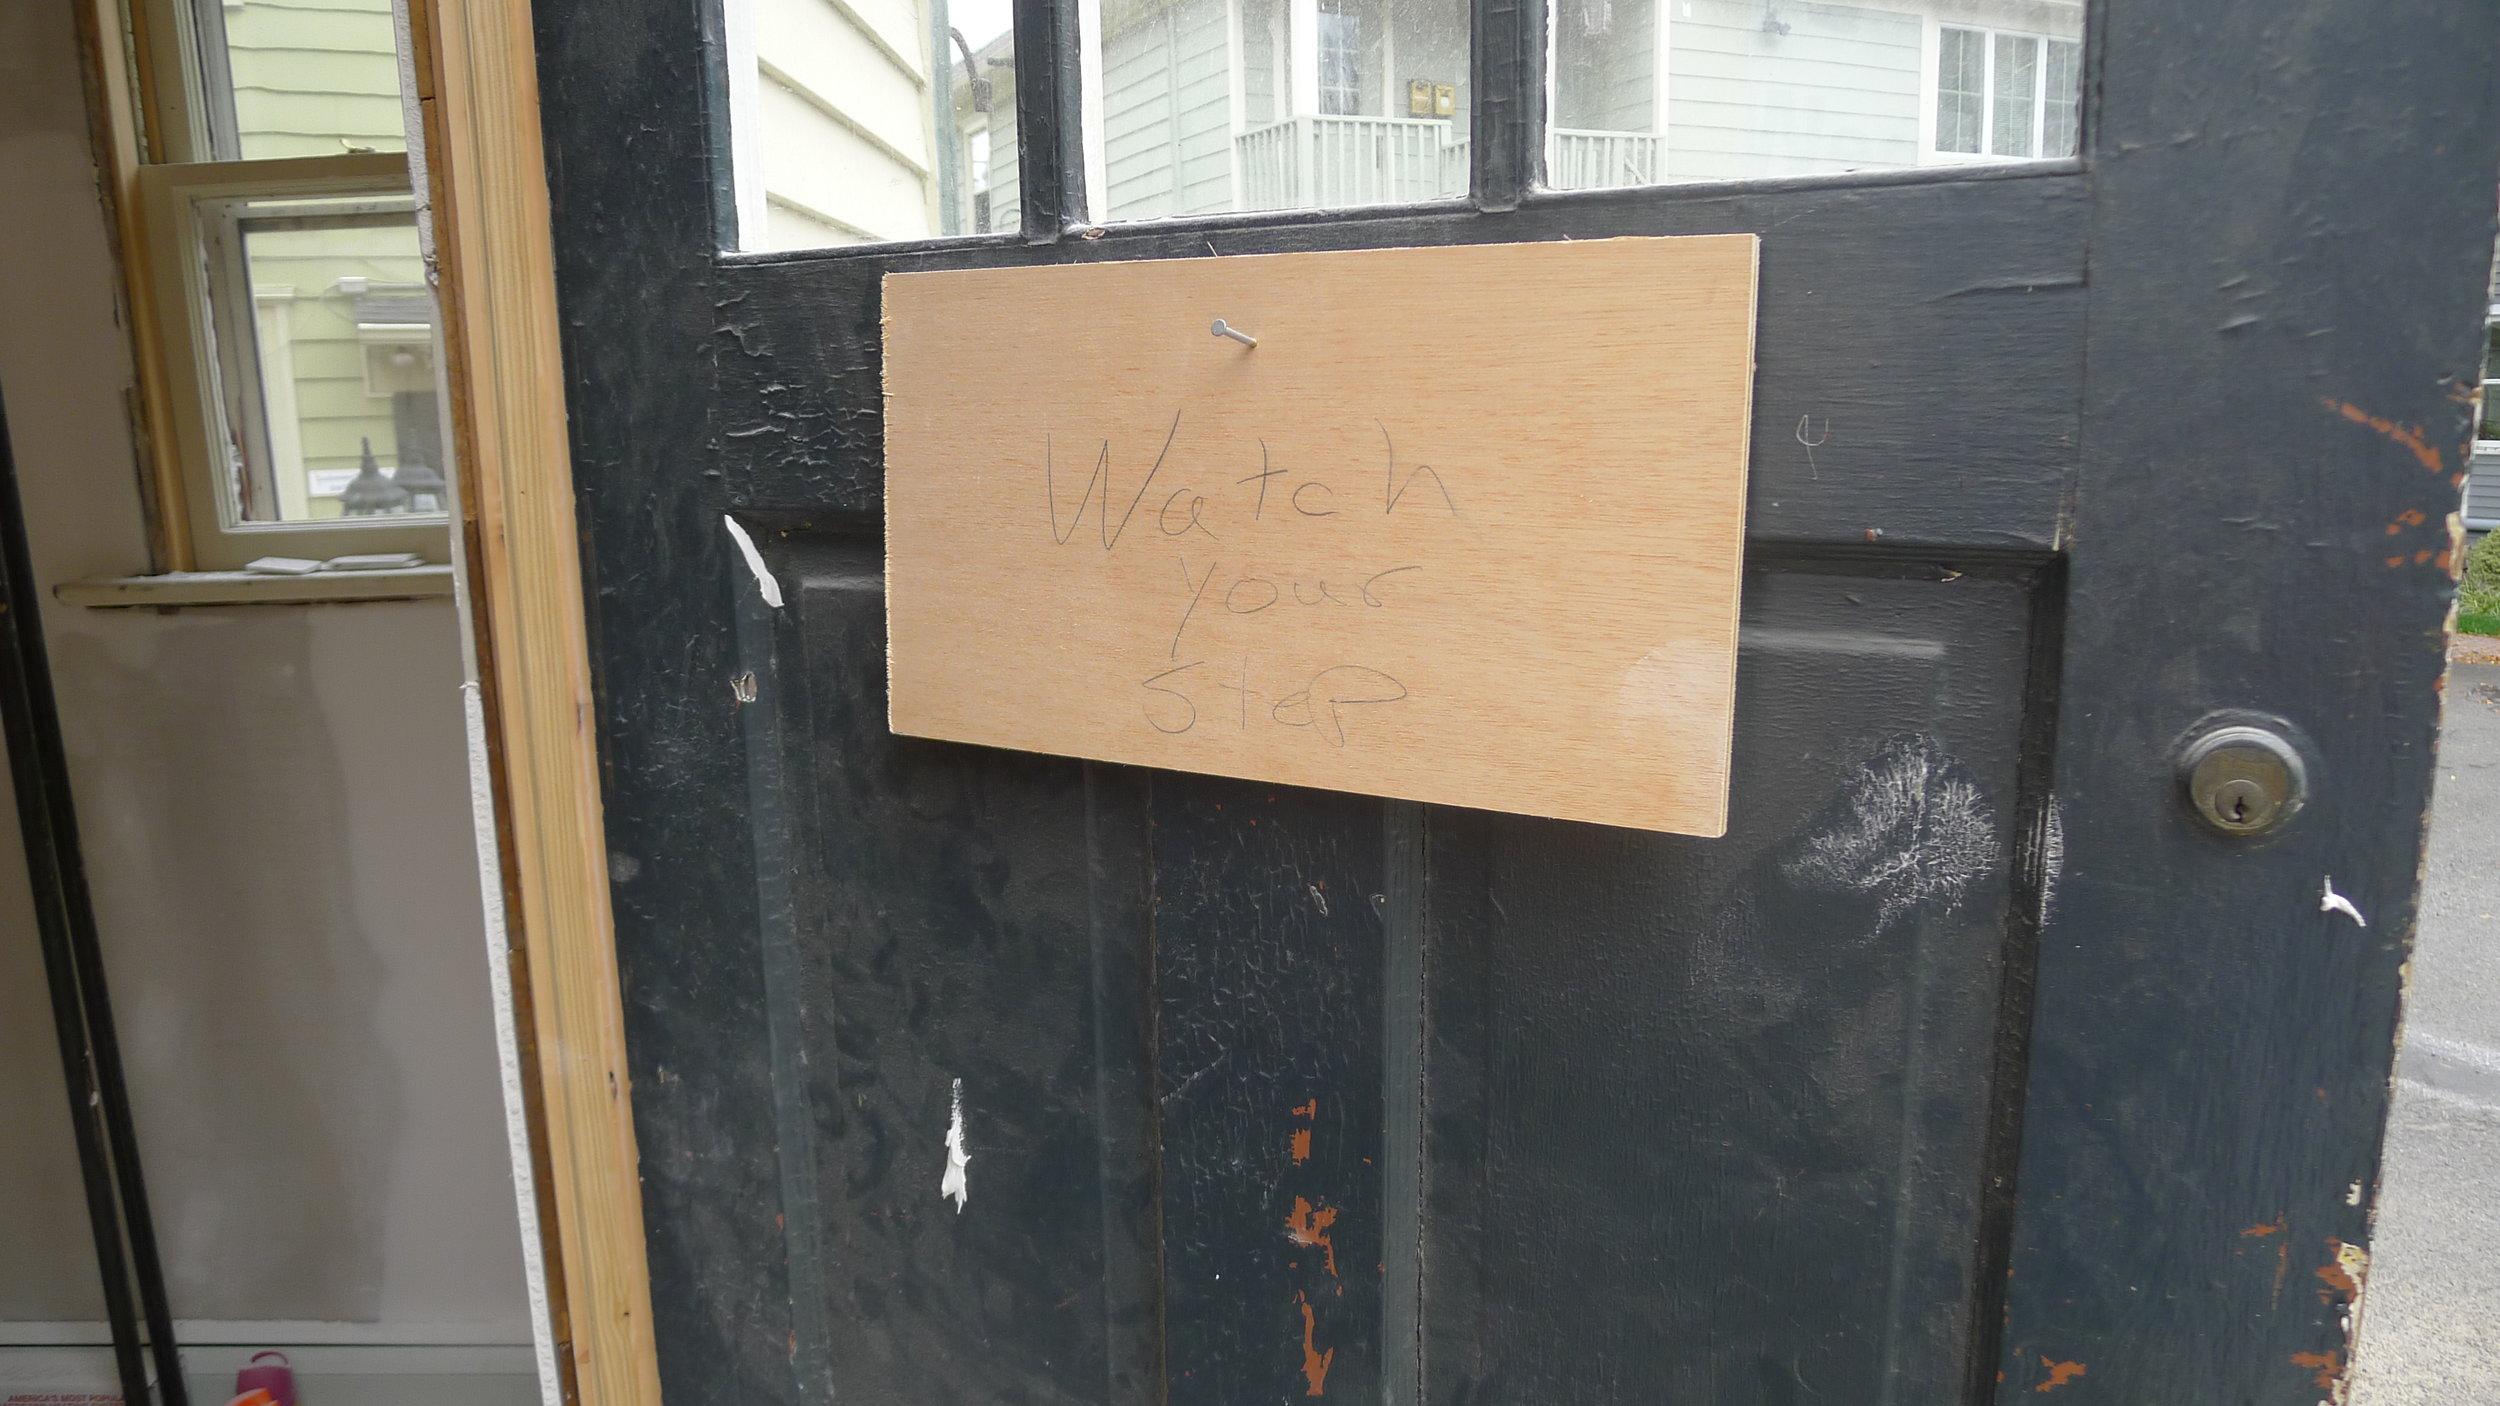 This is the door to nowhere right now!